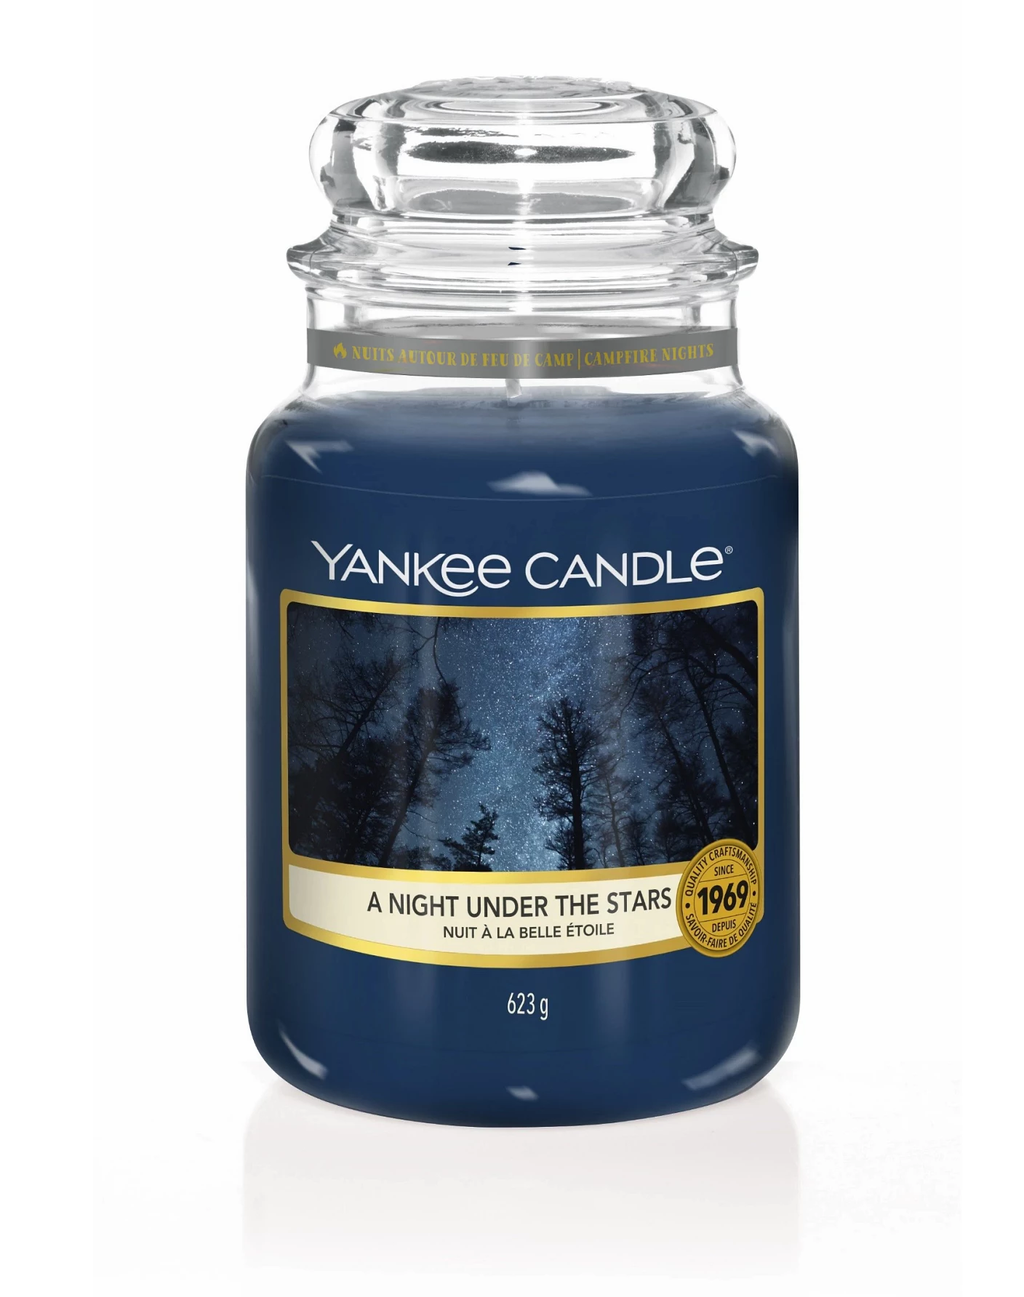 A NIGHT UNDER THE STARS -Yankee Candle- Giara Grande